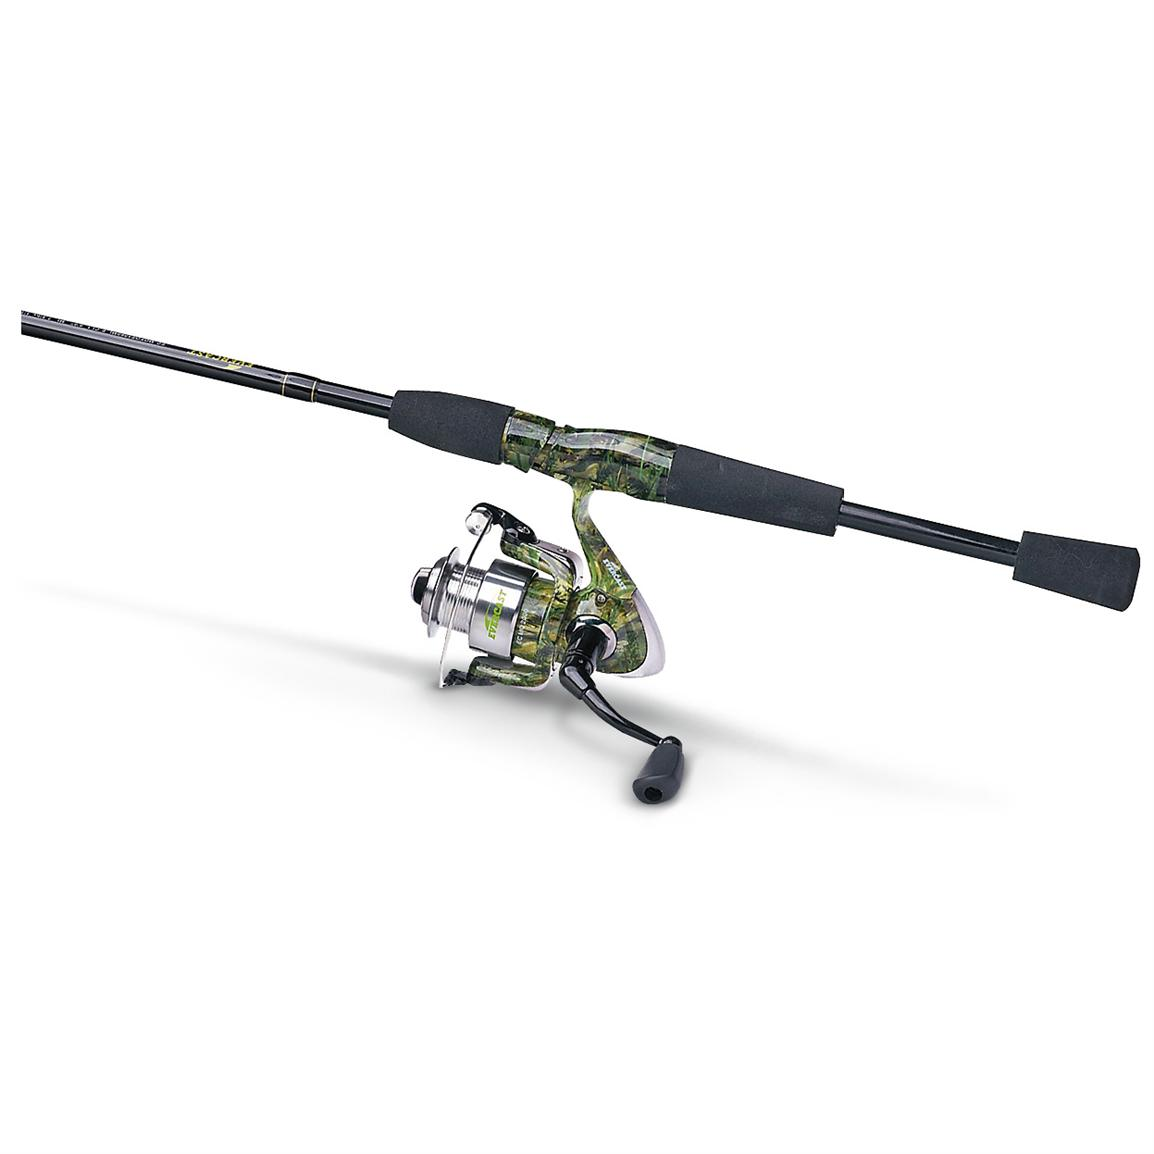 Evercast fishouflage 2 pc rod and reel combo 281515 for Fishing rod reel combo